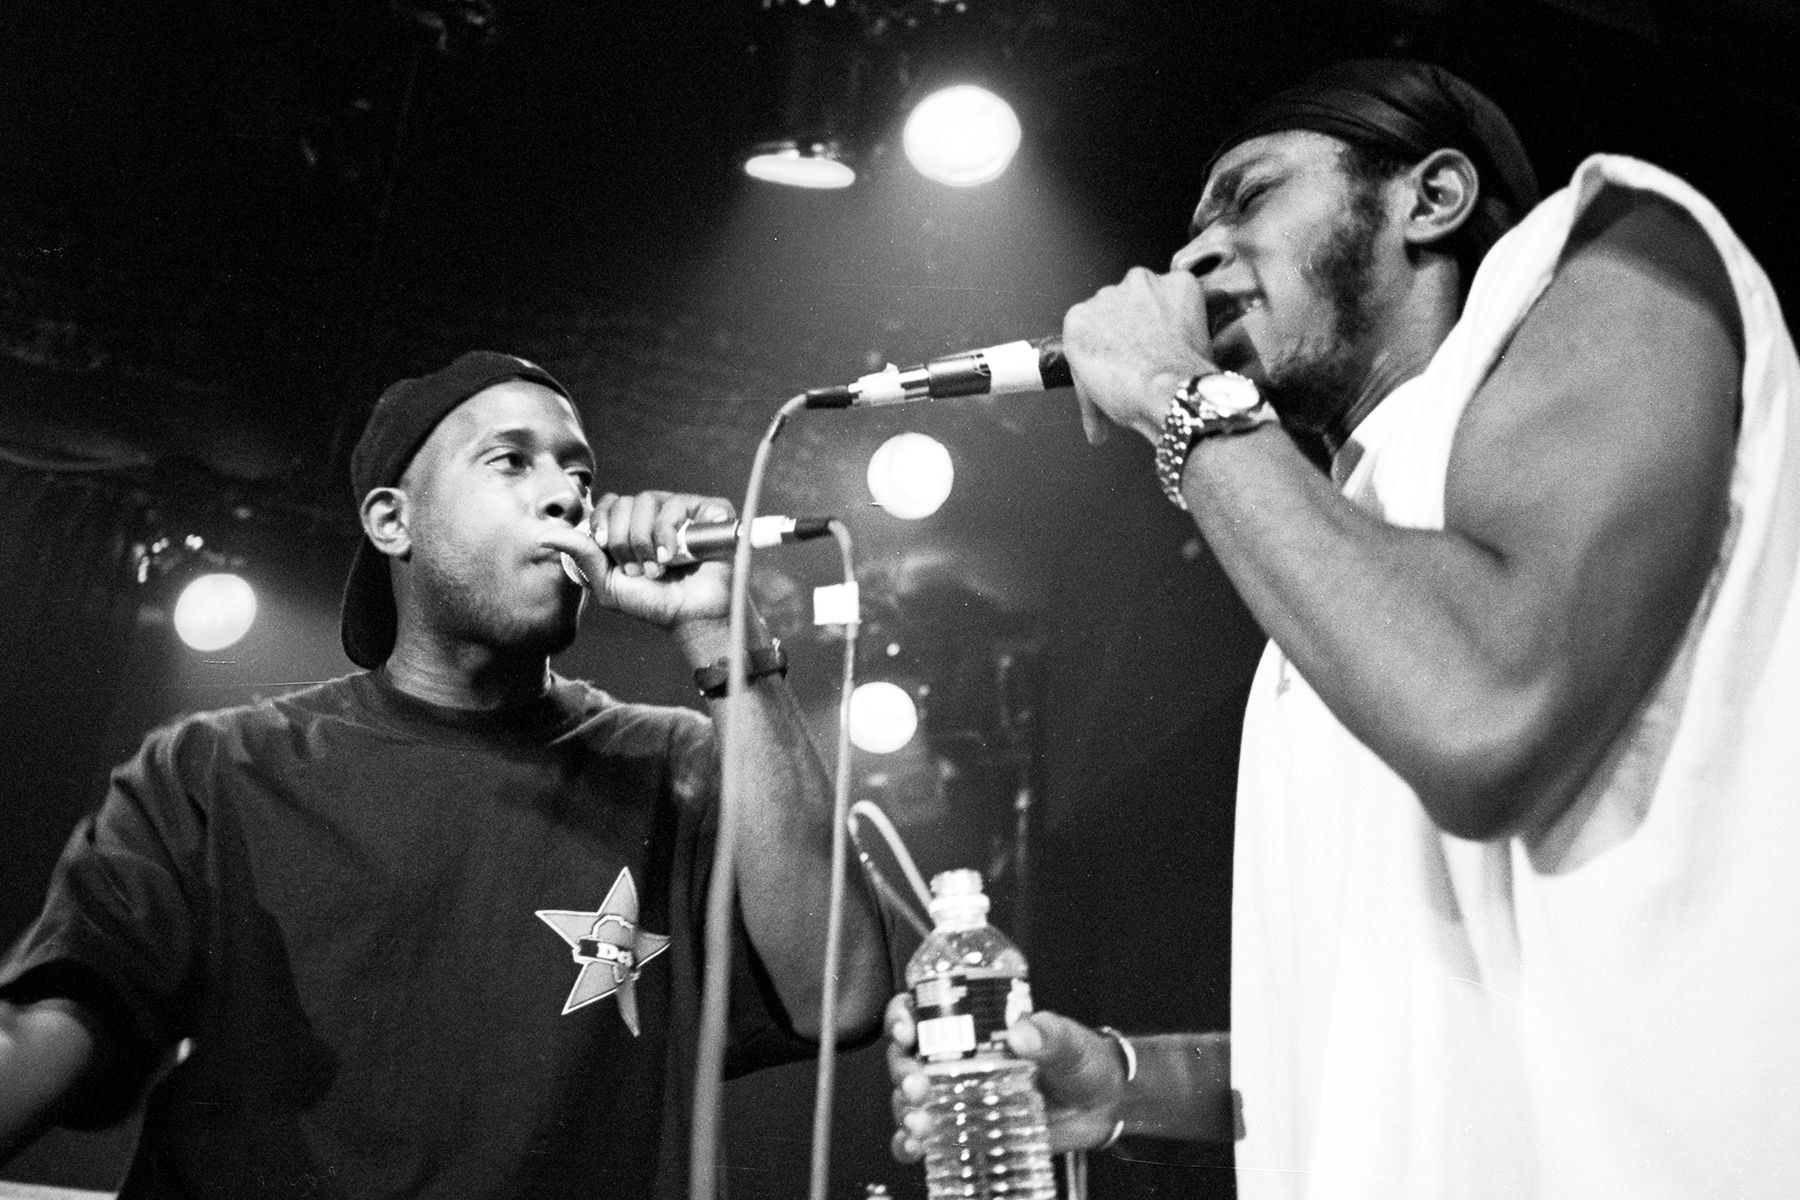 Flashback Mos Def and Talib Kweli Help Televise a HipHop